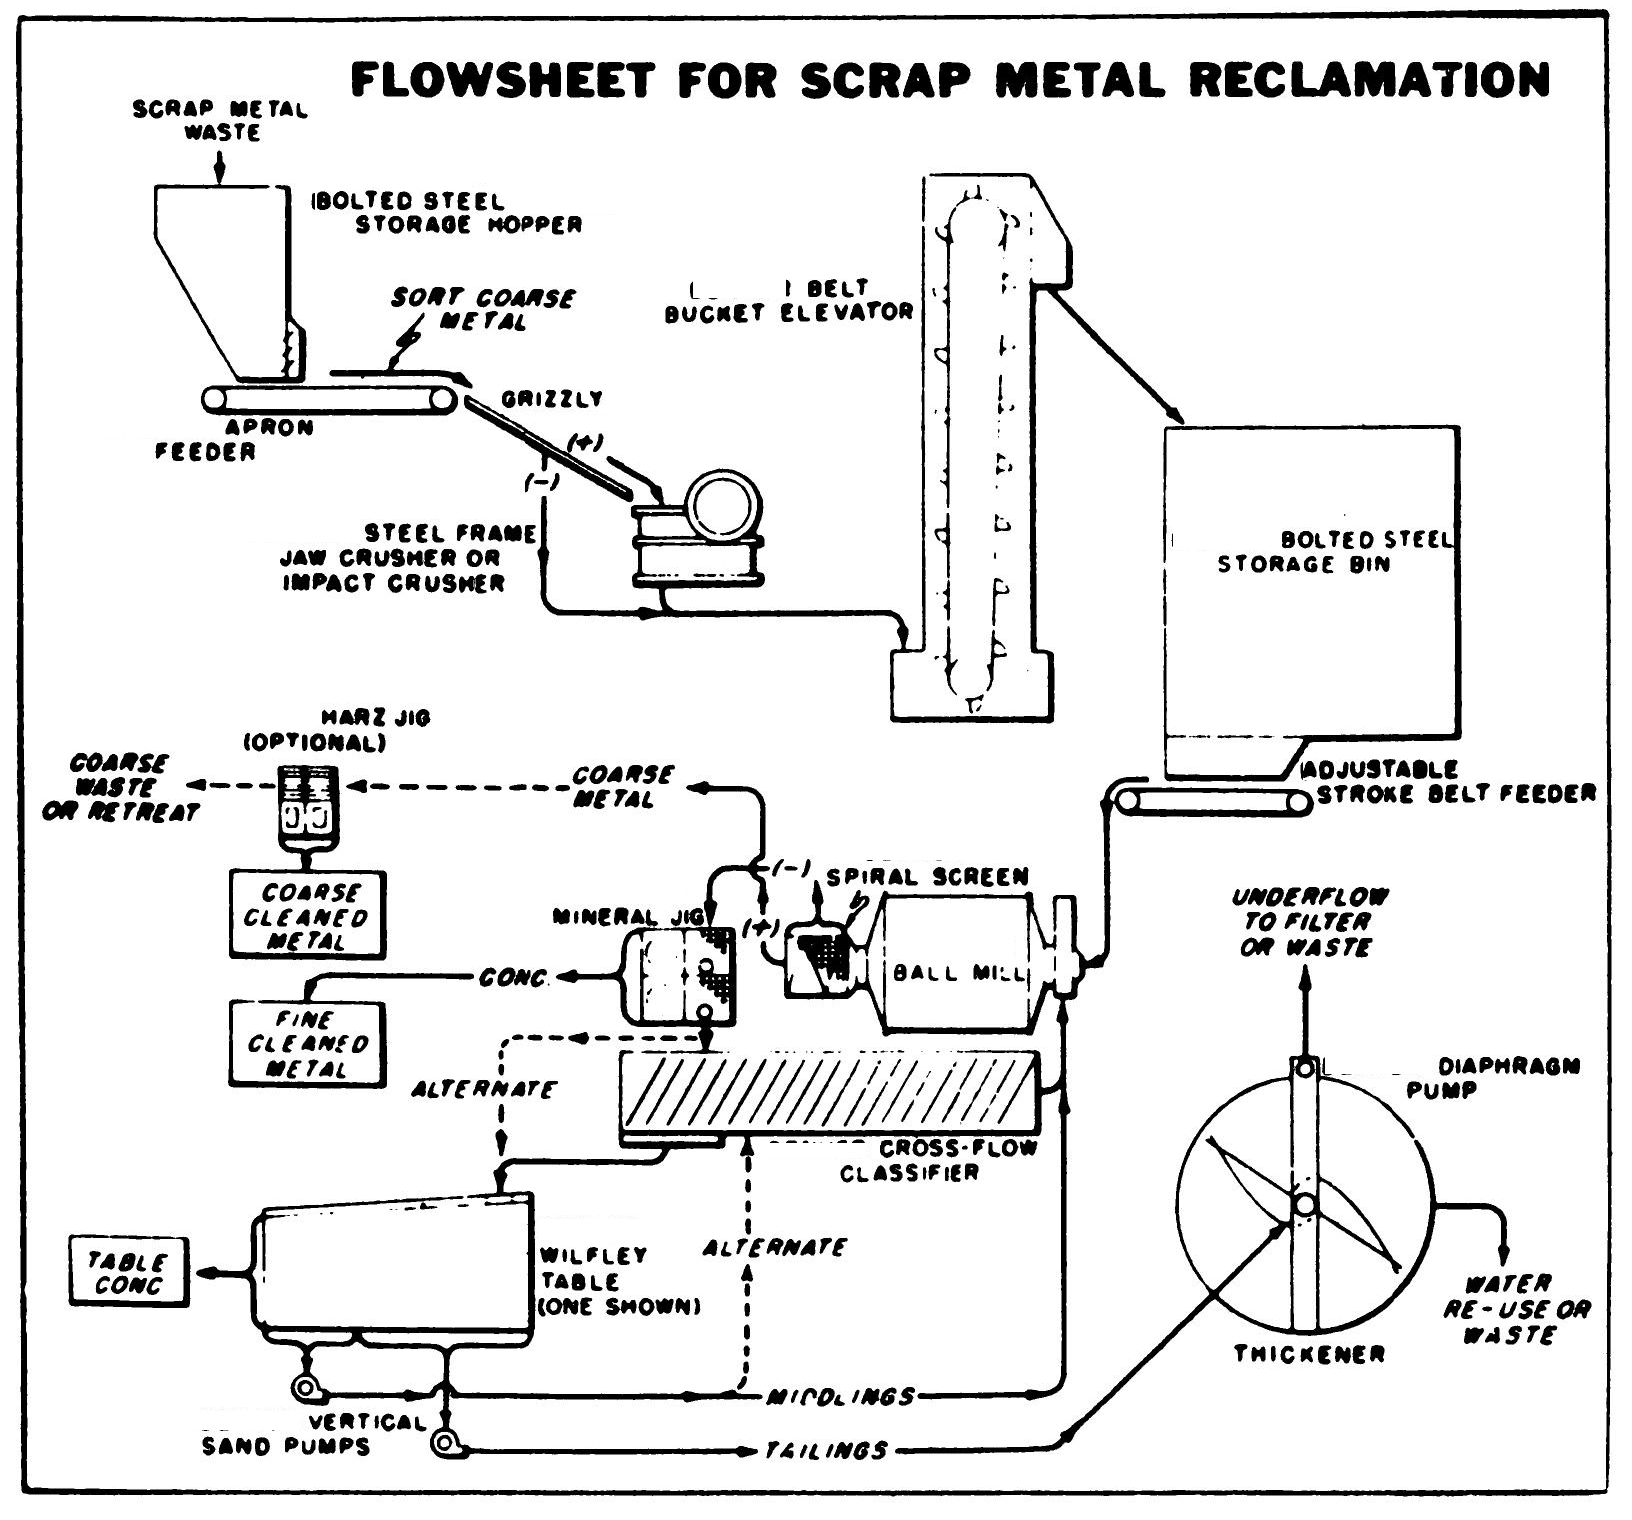 Furnace Process Flow Diagram